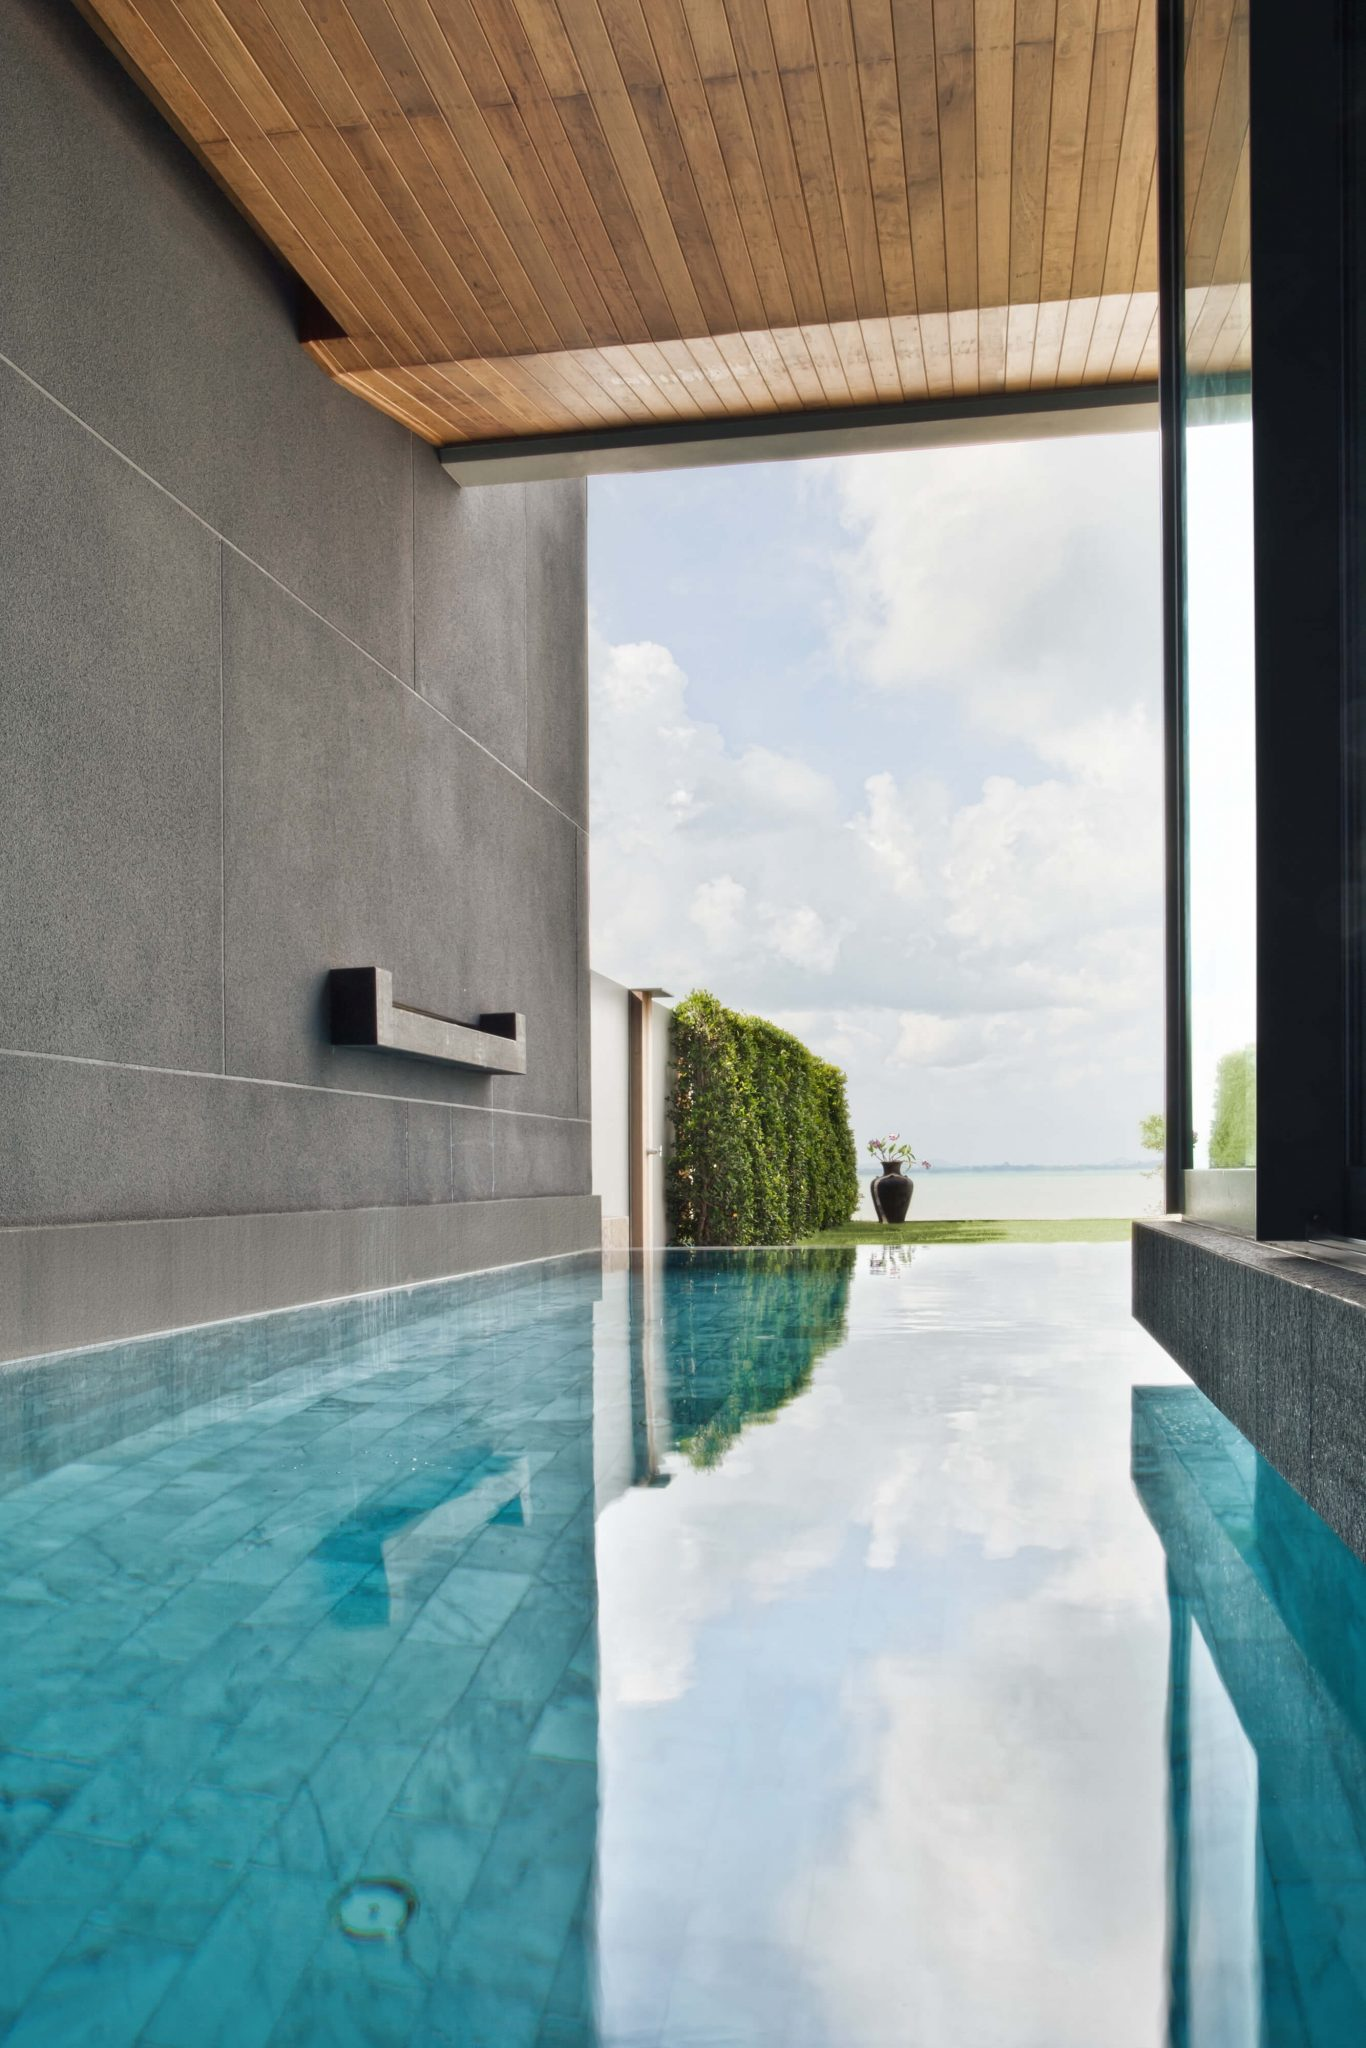 Indoor pool that feels like you're outside with the floor-to-ceiling window on exterior wall. Pool butts up to the glass window.